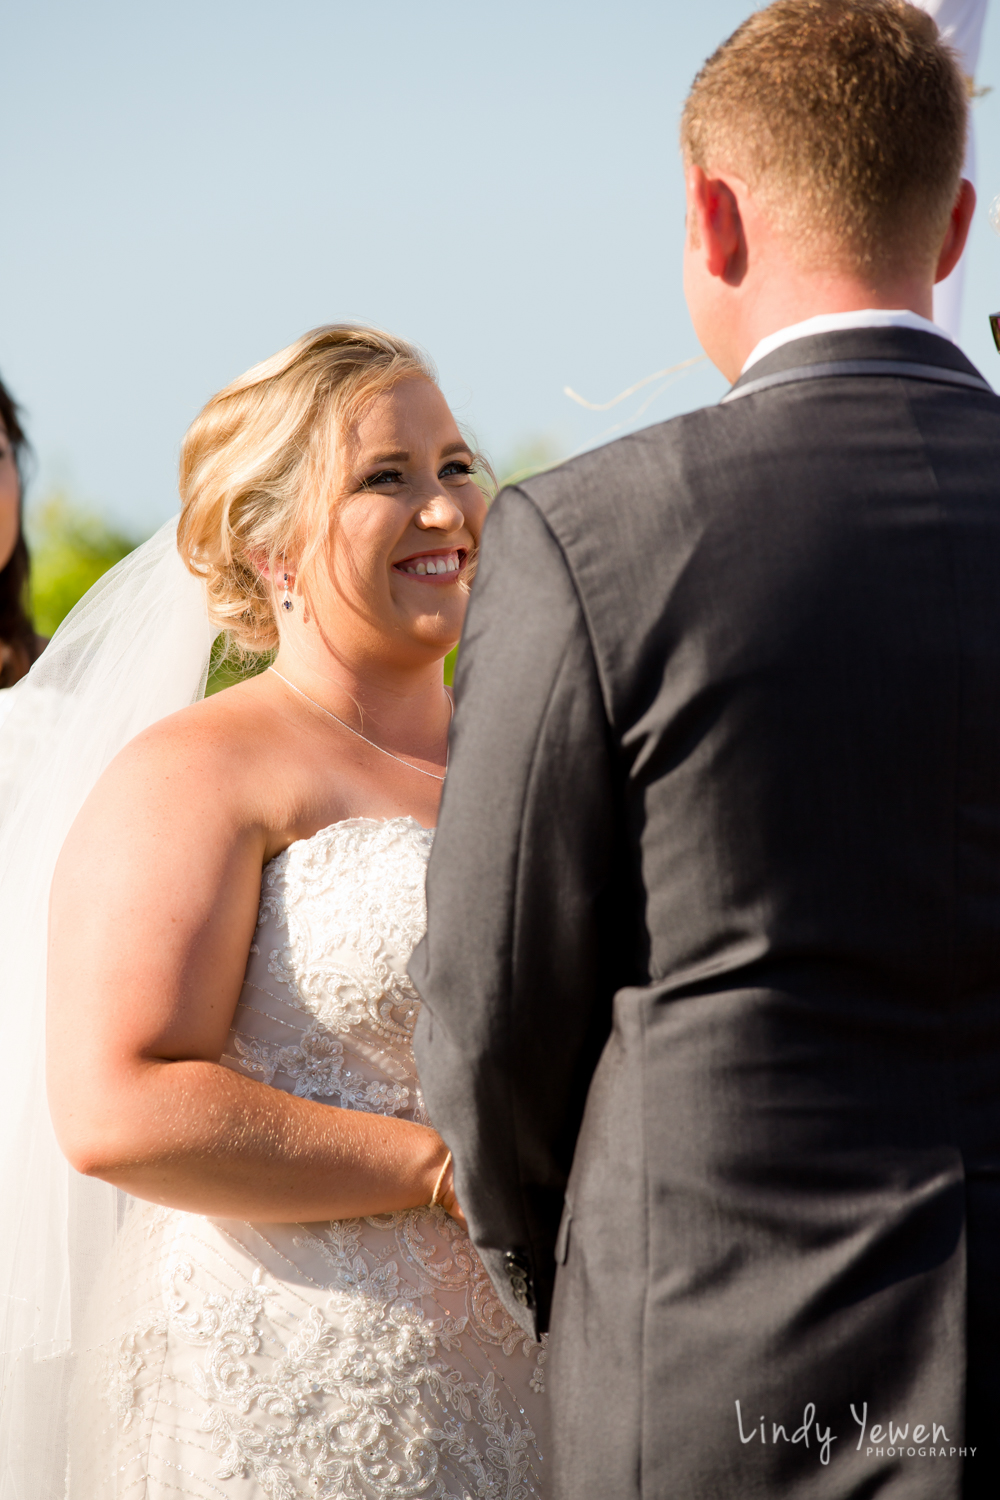 Bribie-Island-wedding-photographer-Chloe-Adam 227.jpg